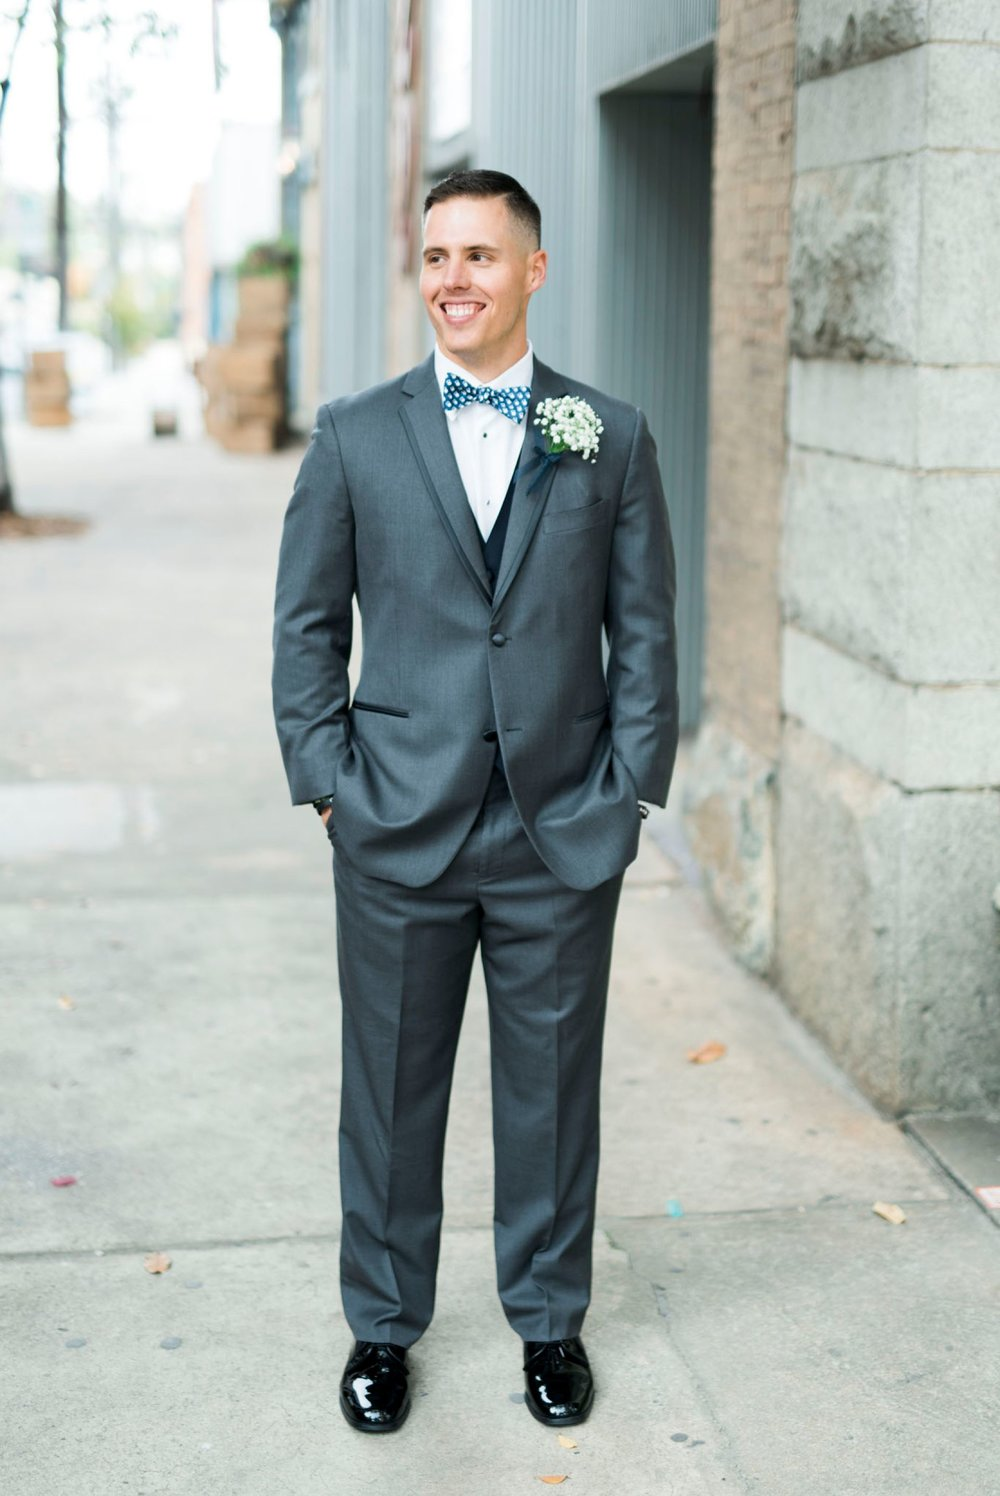 Trescaon8th_DowntownLynchburg_Virginiaweddingphotographer 22.jpg